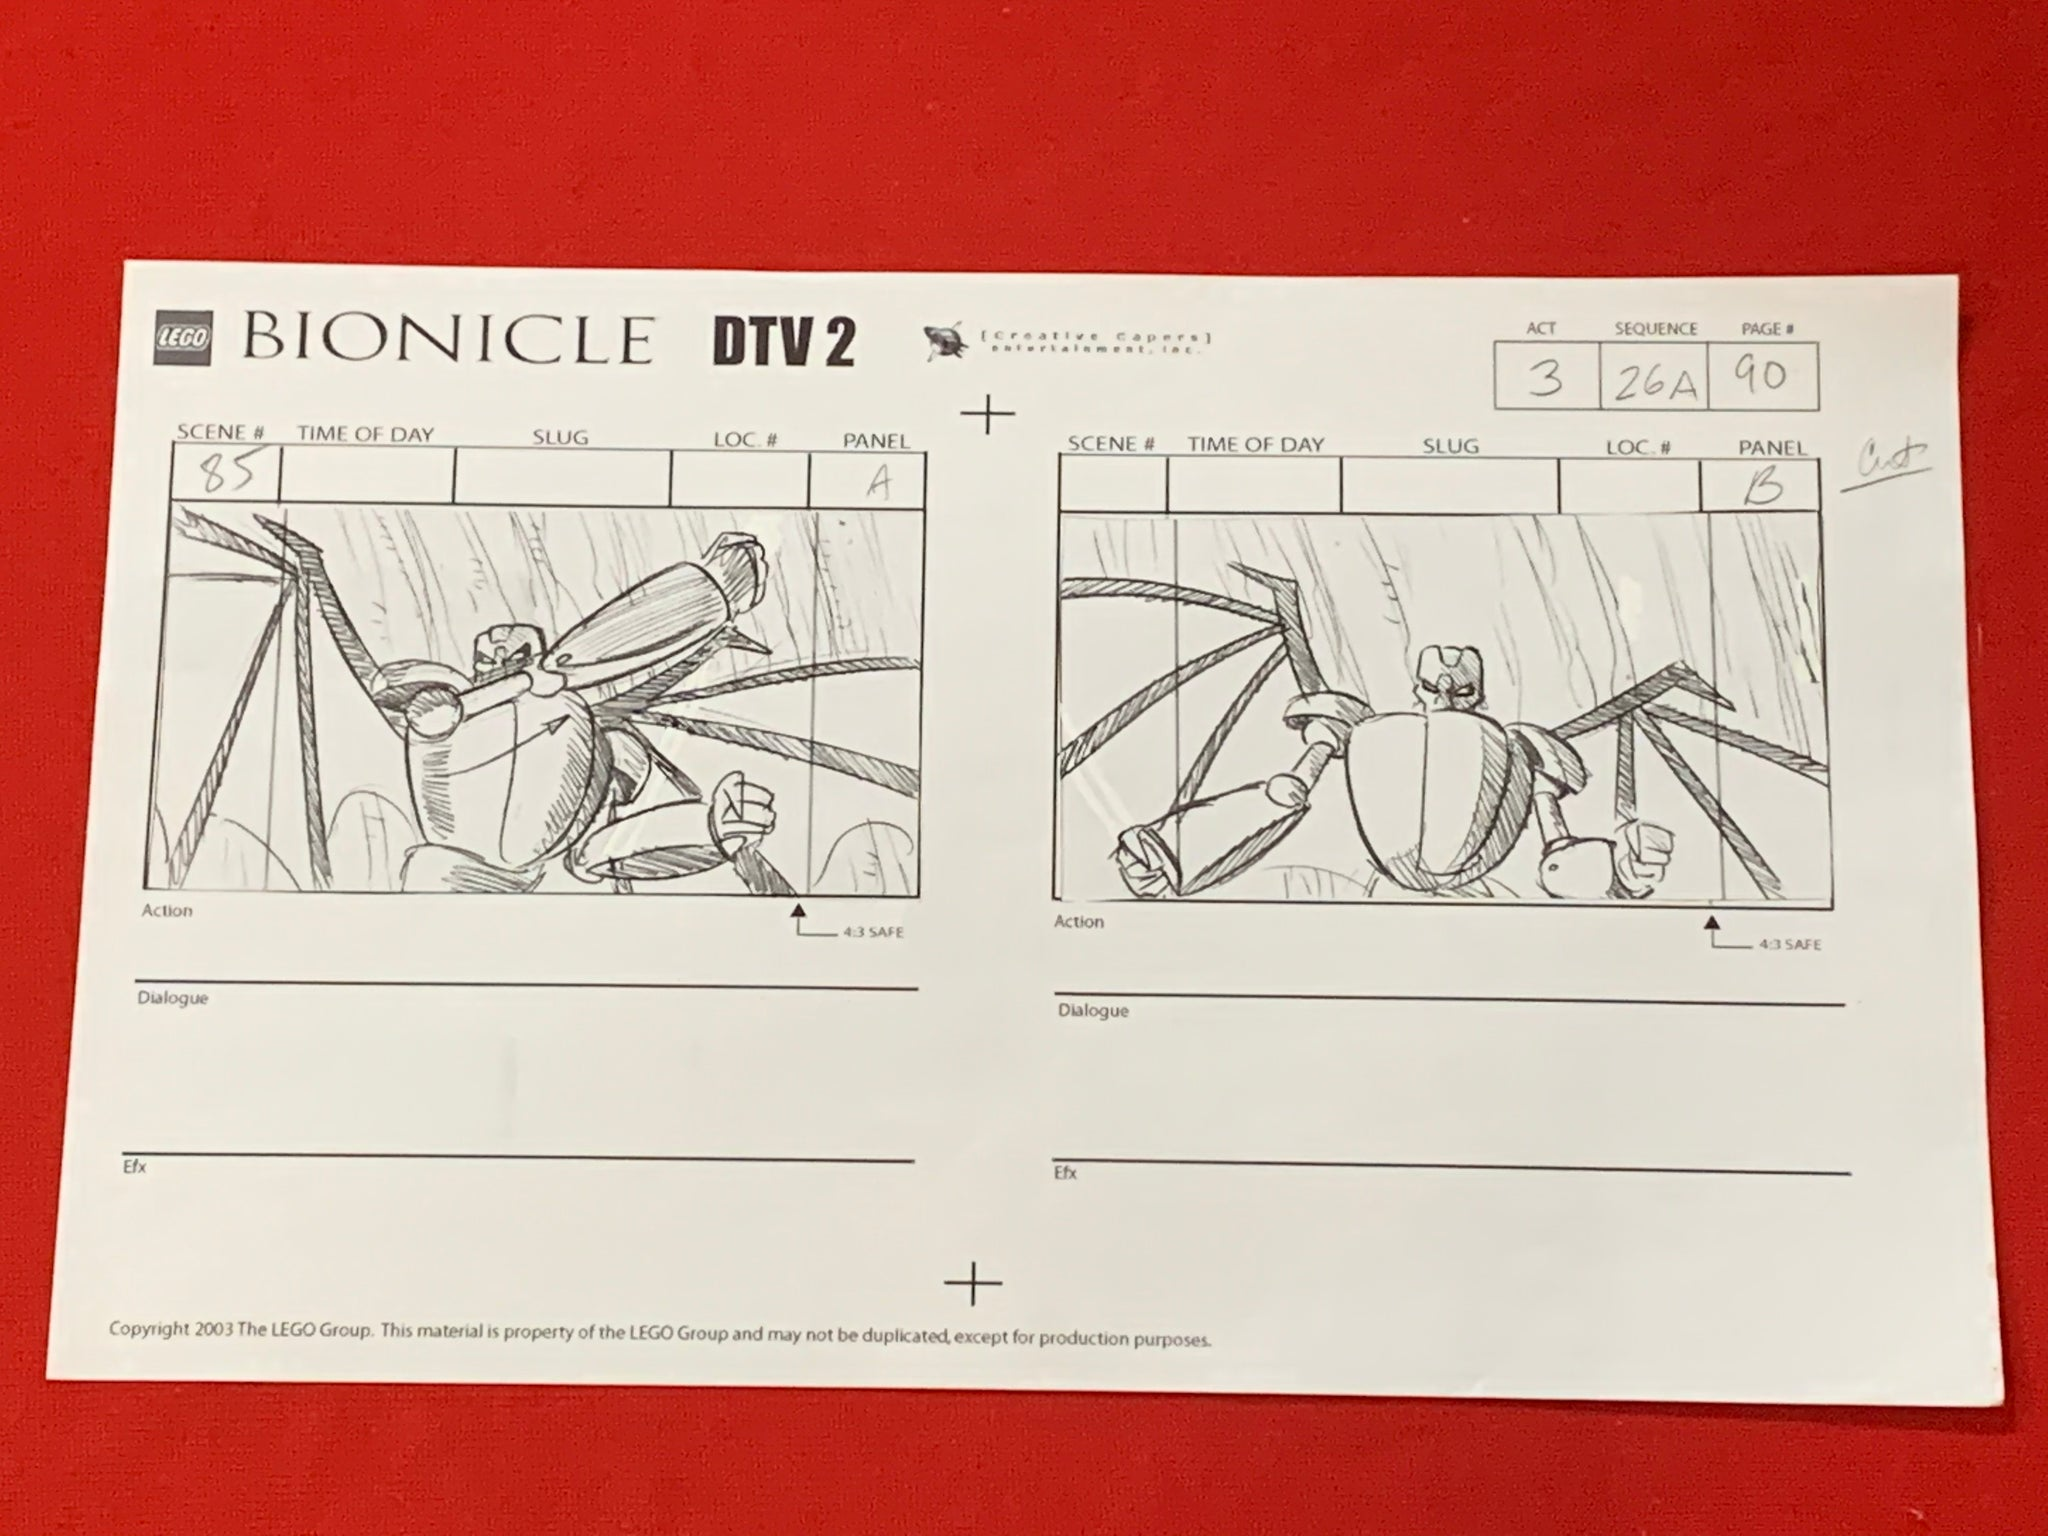 Lego Bionicle storyboard 3 EX0828 - Animation Legends